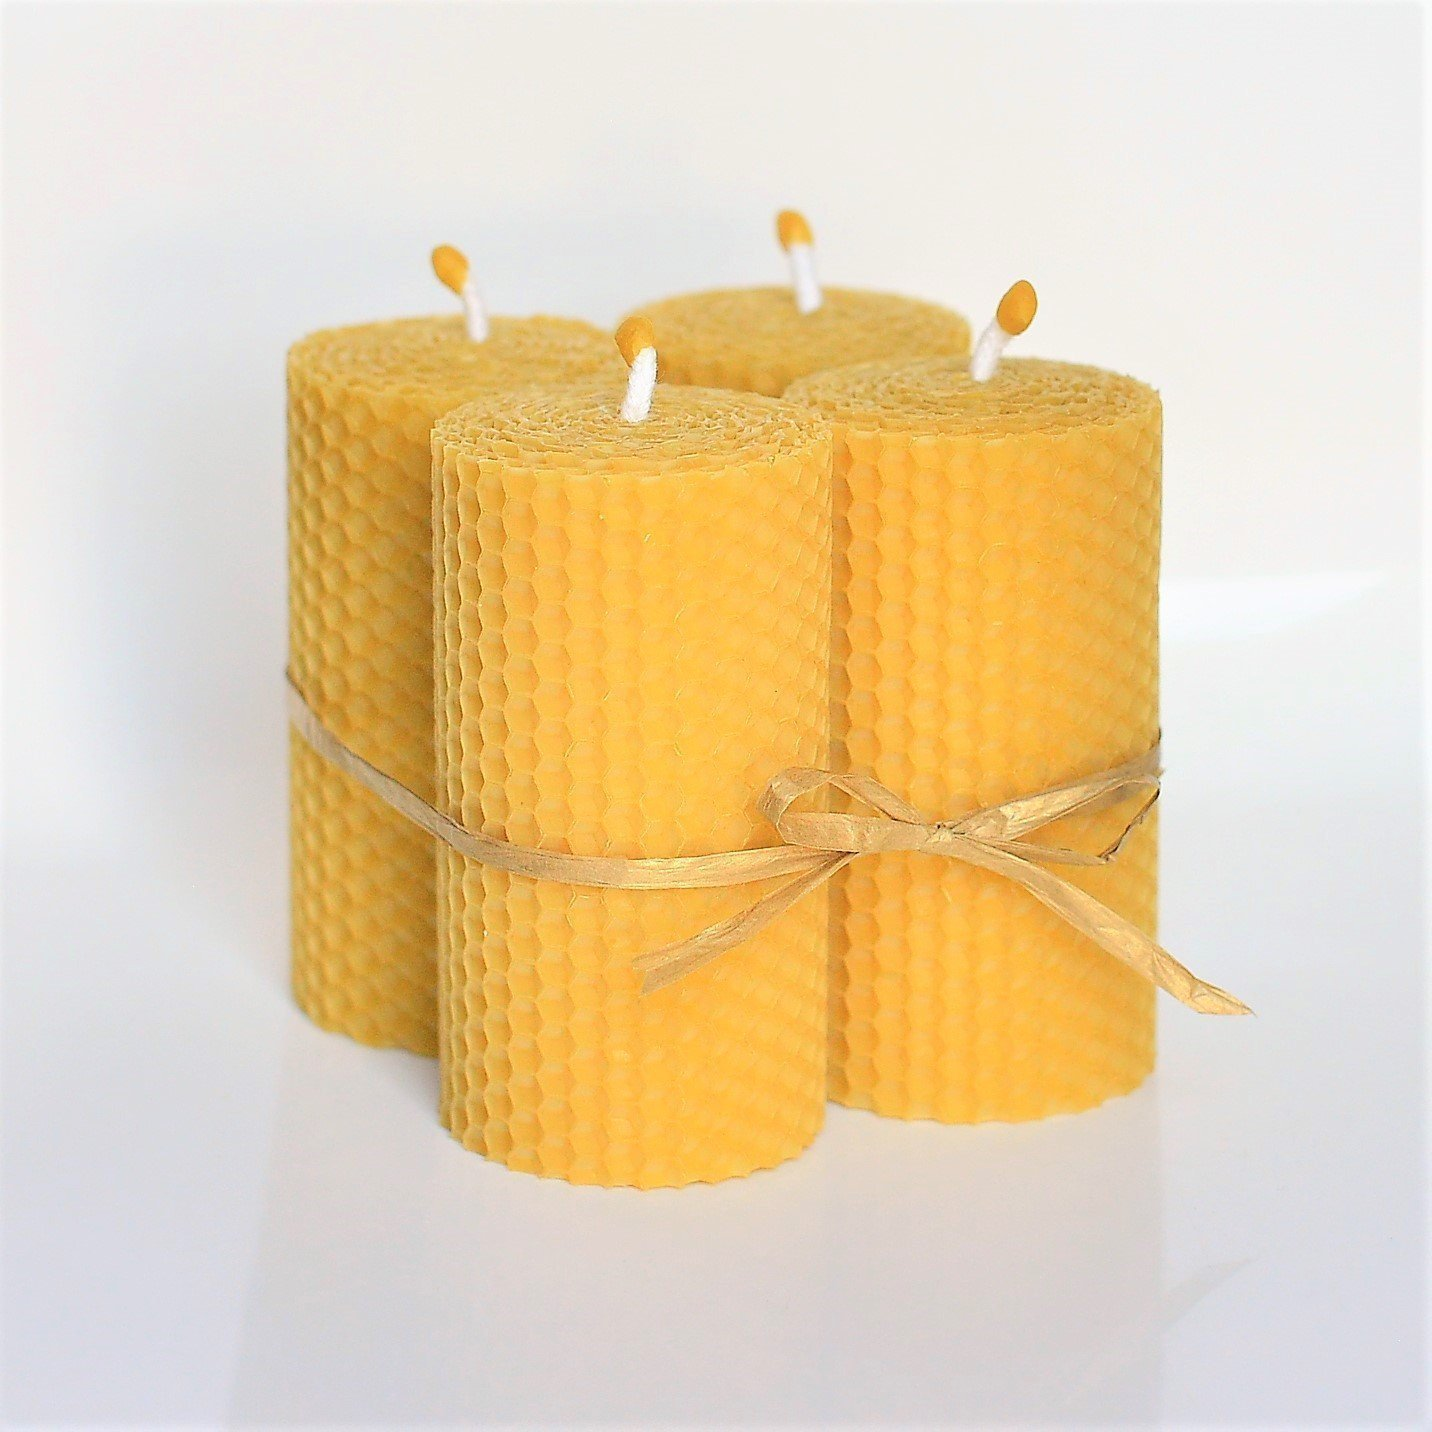 Amazon Com 100 Beeswax Pillar Candles Set Of  X  X 5 Cm Hand Rolled Natural And Lovely Honey Scent 100 Handmade Handmade